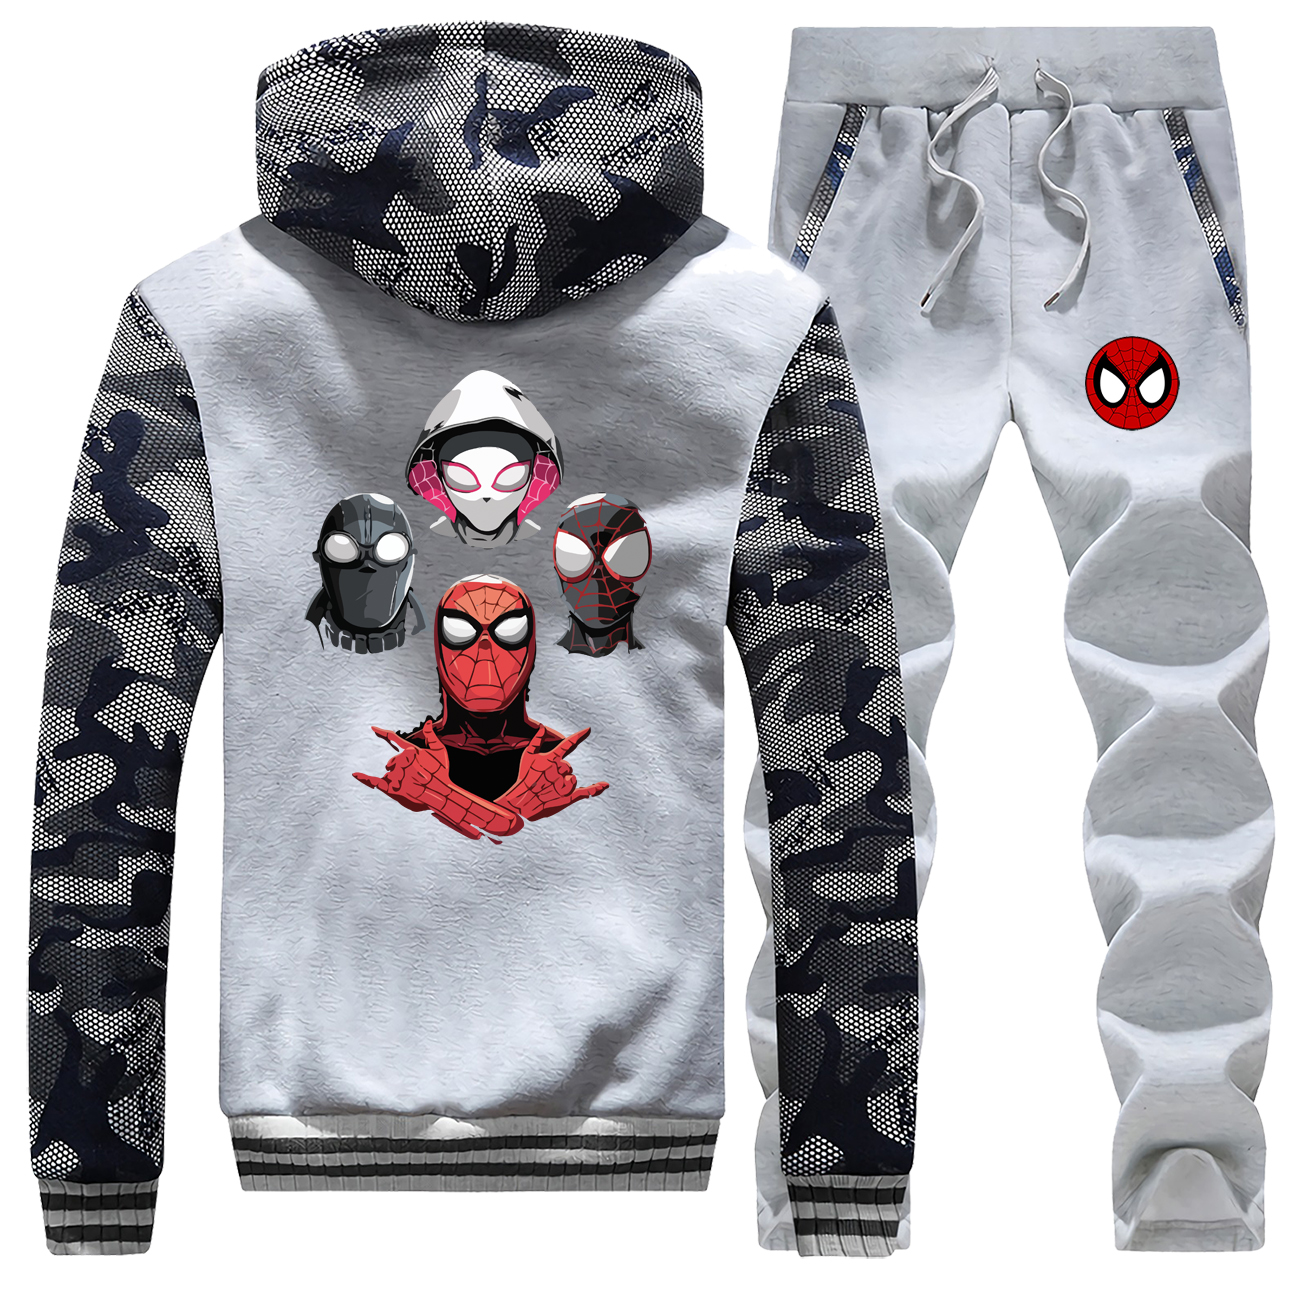 Spider-Man Clothes Sets Winter Thick Men Hoody Warm Zip Coat Men Sports Pants Spider Man Parallel Universe Brand Jacket Trousers